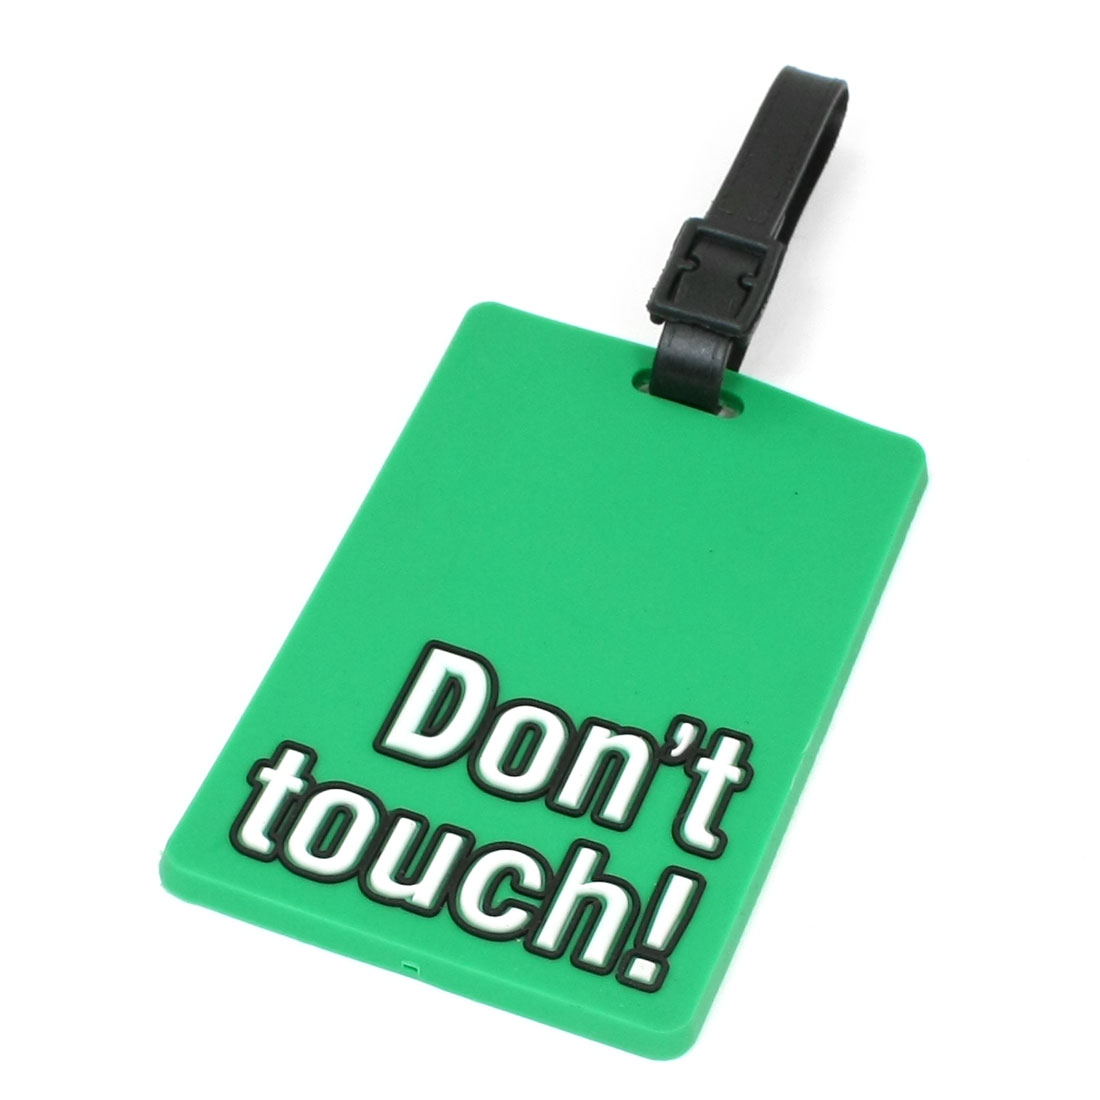 Don't touch Words Print Travel Bag Baggage Backpack Luggage Name ID Tag Green